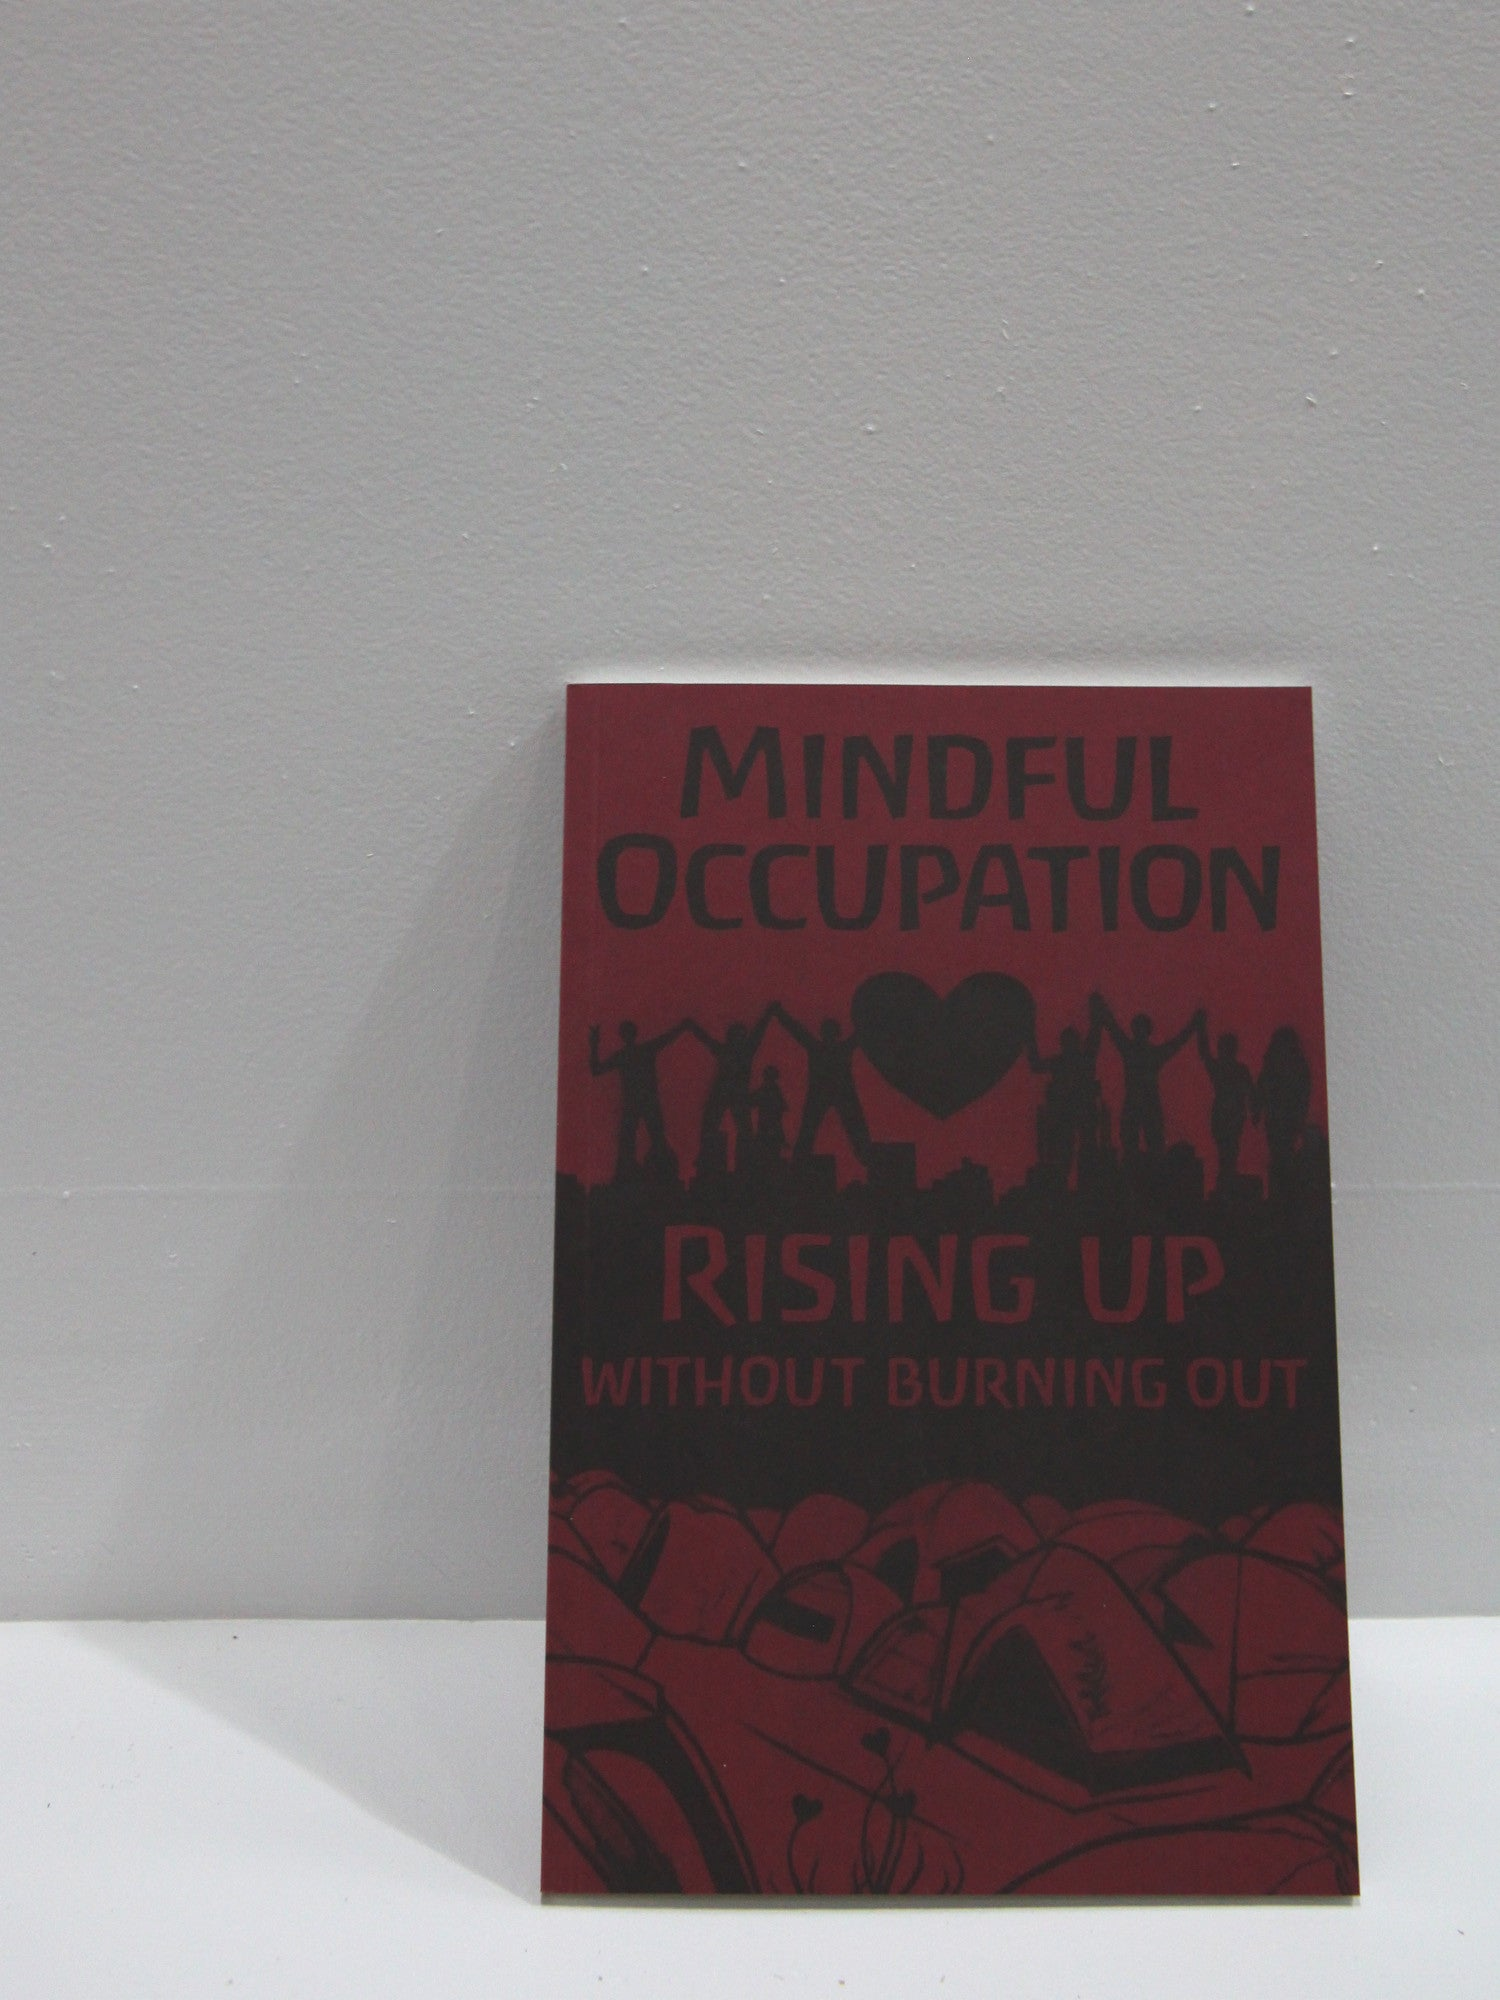 Mindful Occupation: Rising Up Without Burning Out - Sustain Chicago